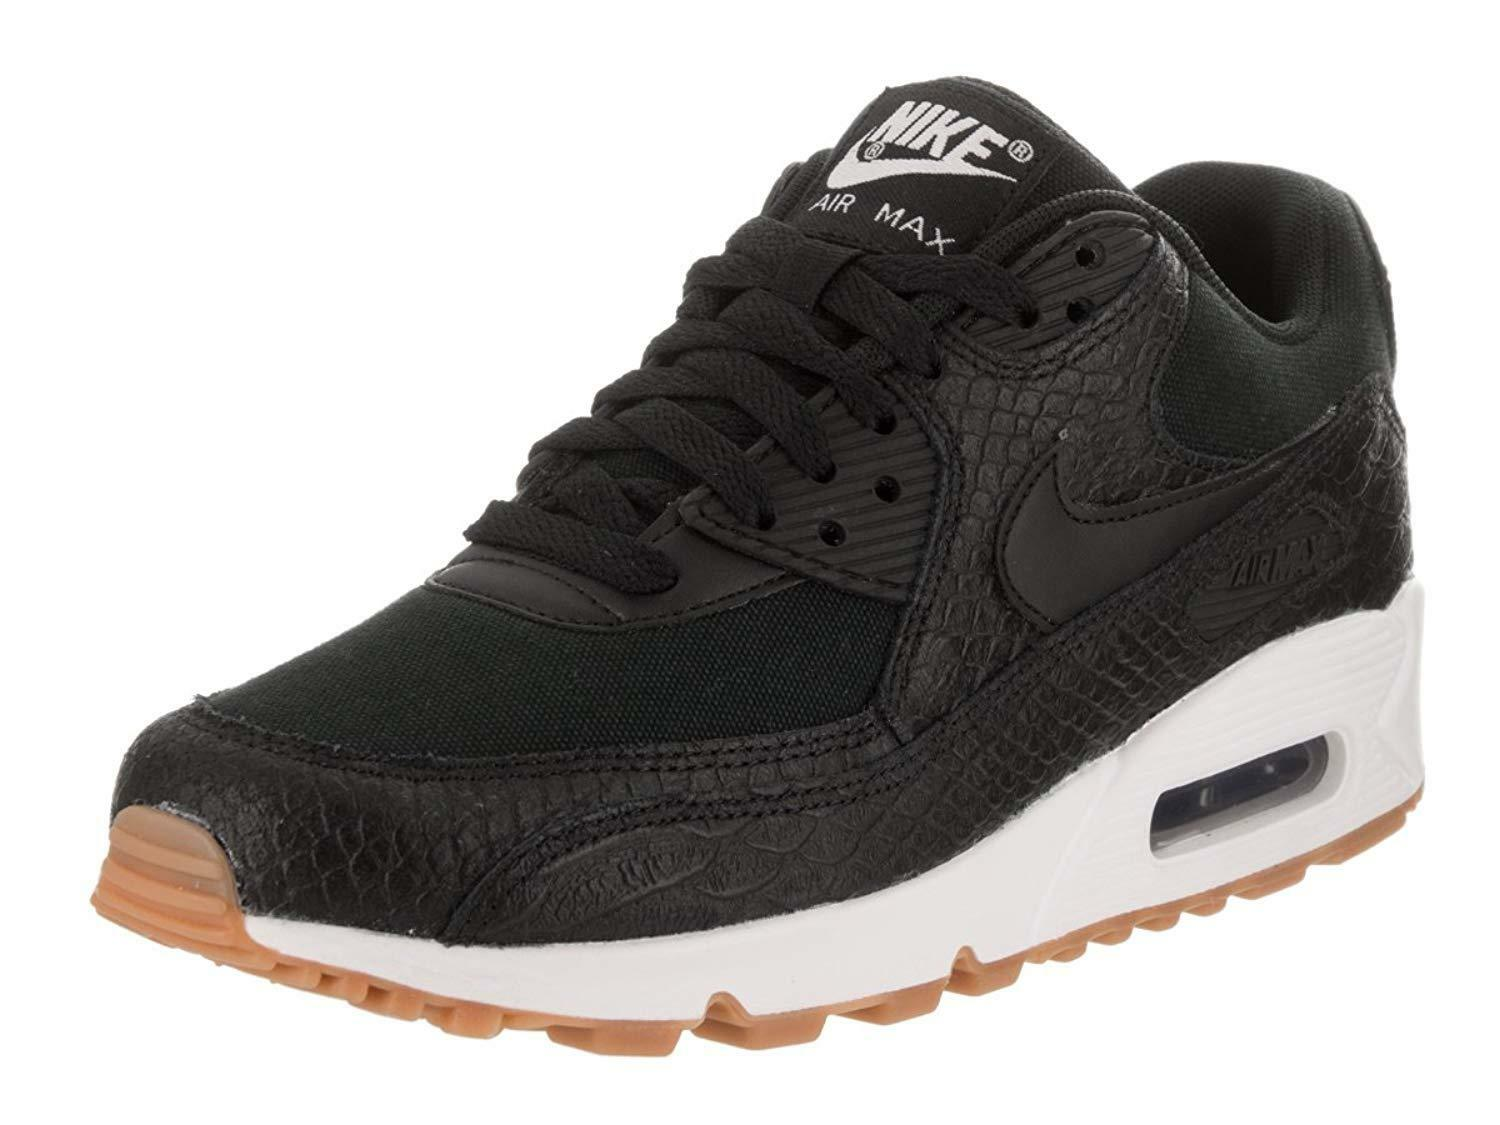 Nike Air Max 90 Premium BlackBlack Gum Yellow White (WS) (896497 002)